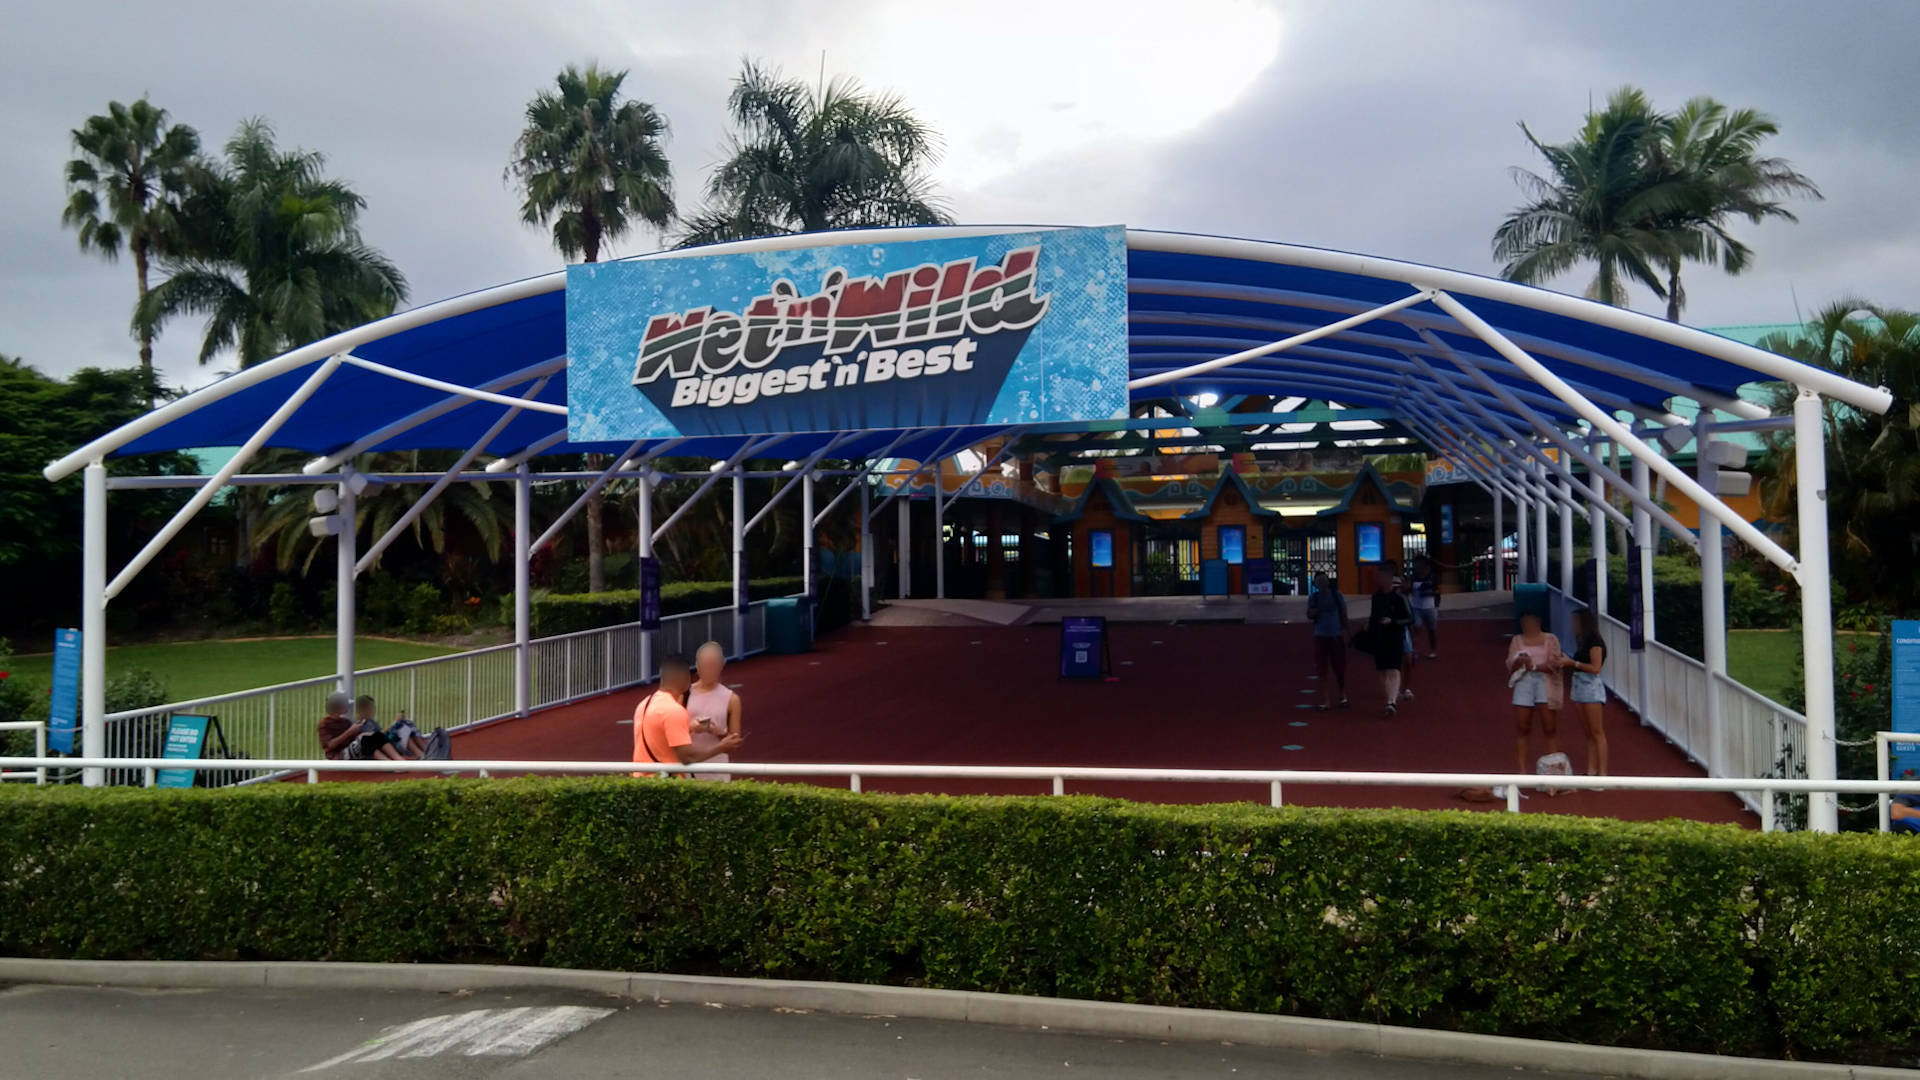 Entrance of the Wet n' Wild theme park on the Gold Coast Queensland